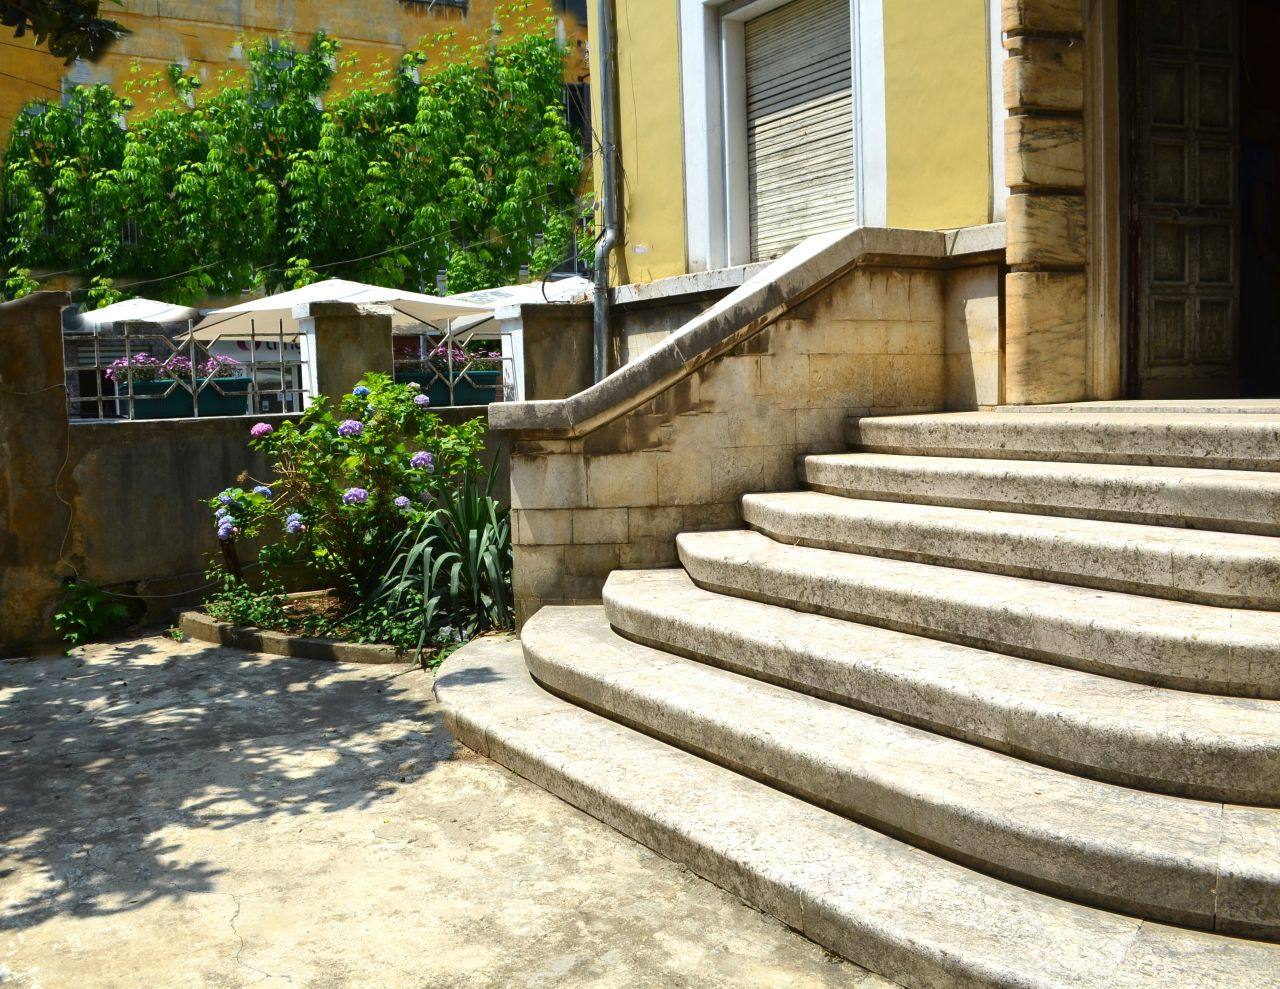 Albania Real Estate in Tirana, House for Sale located close to Durresi Street and the center of Tirana.